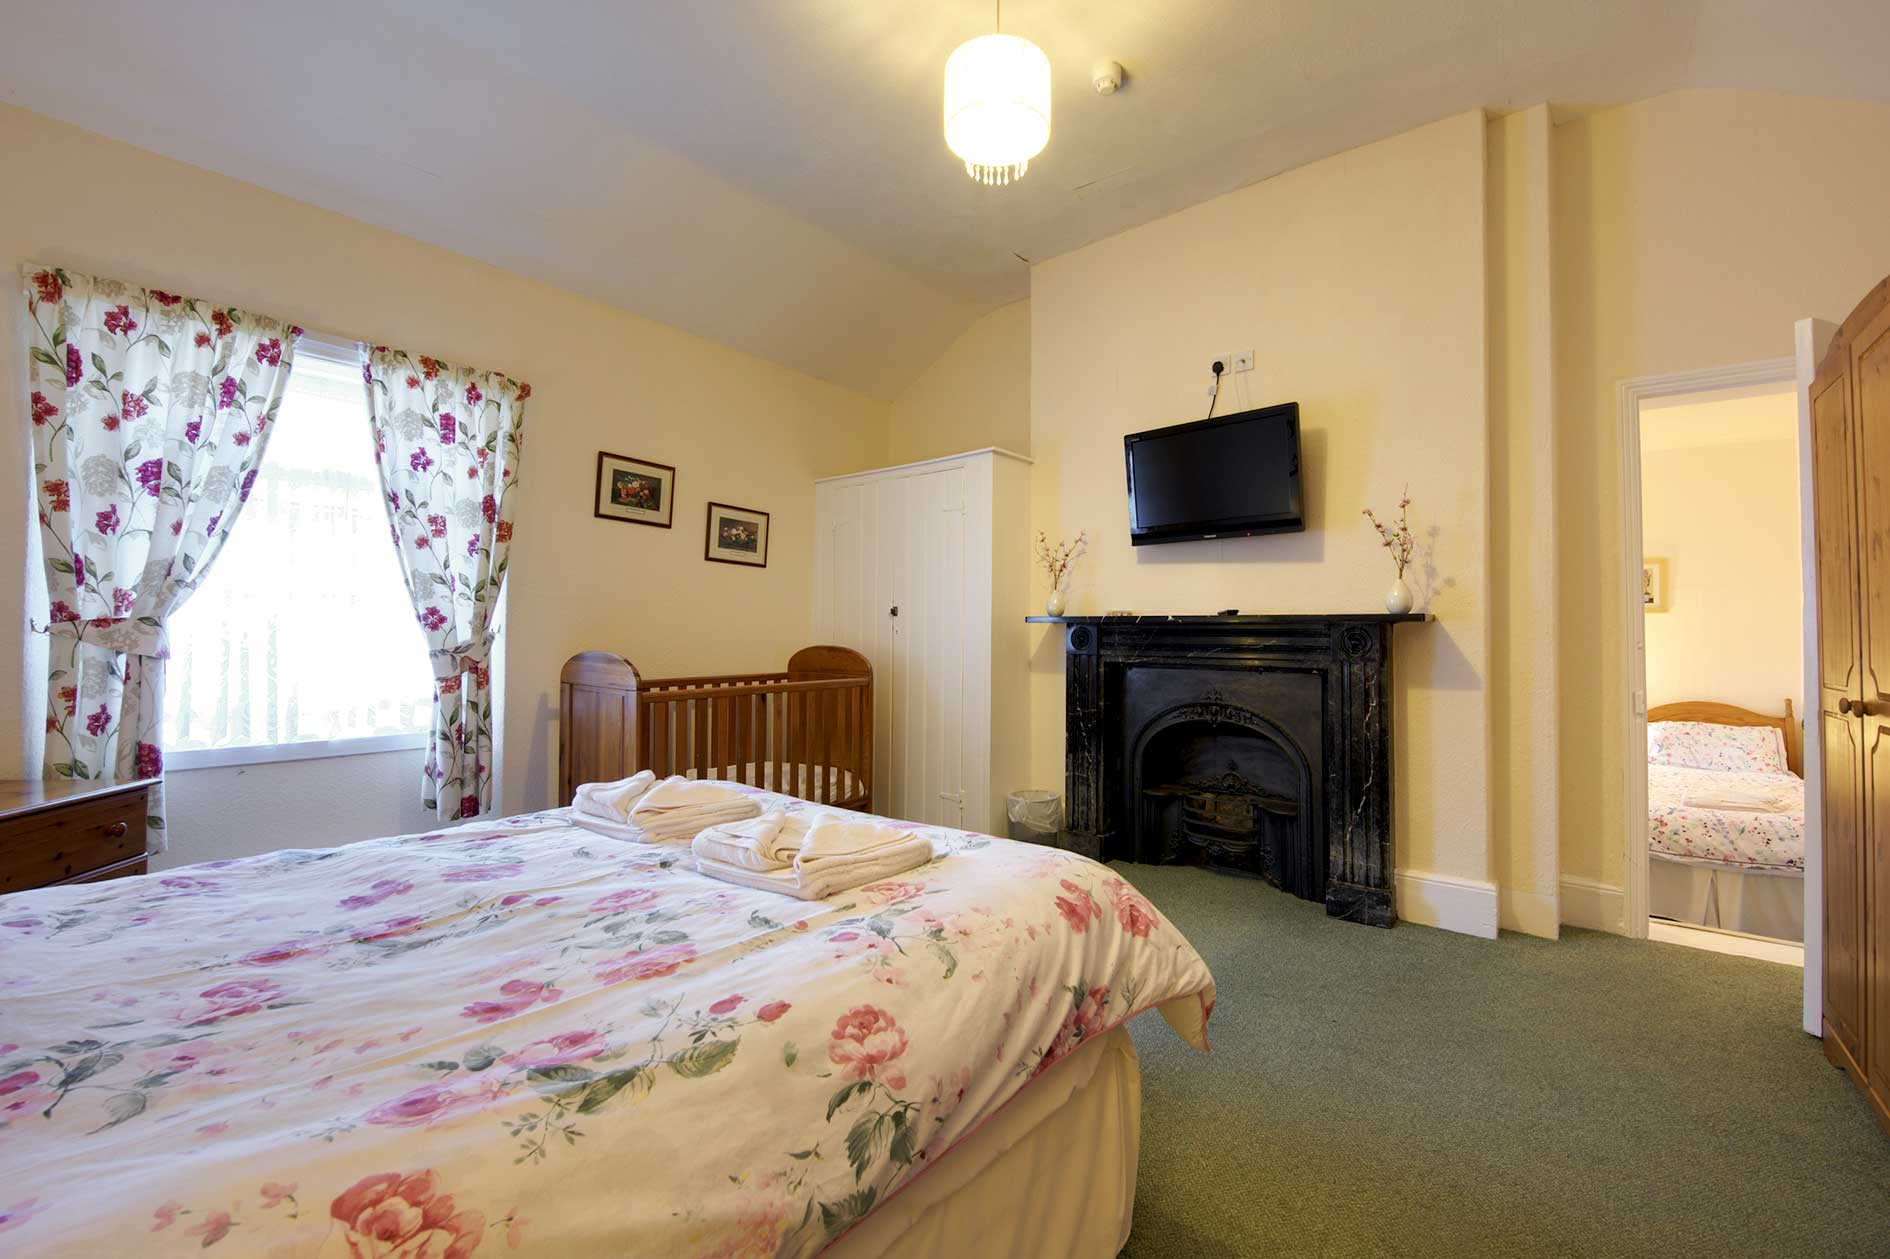 Light Bedroom Containing A Double Bed With Red Flower Covers And Curtains Plus Wooden Furniture And Black Victorian Fireplace